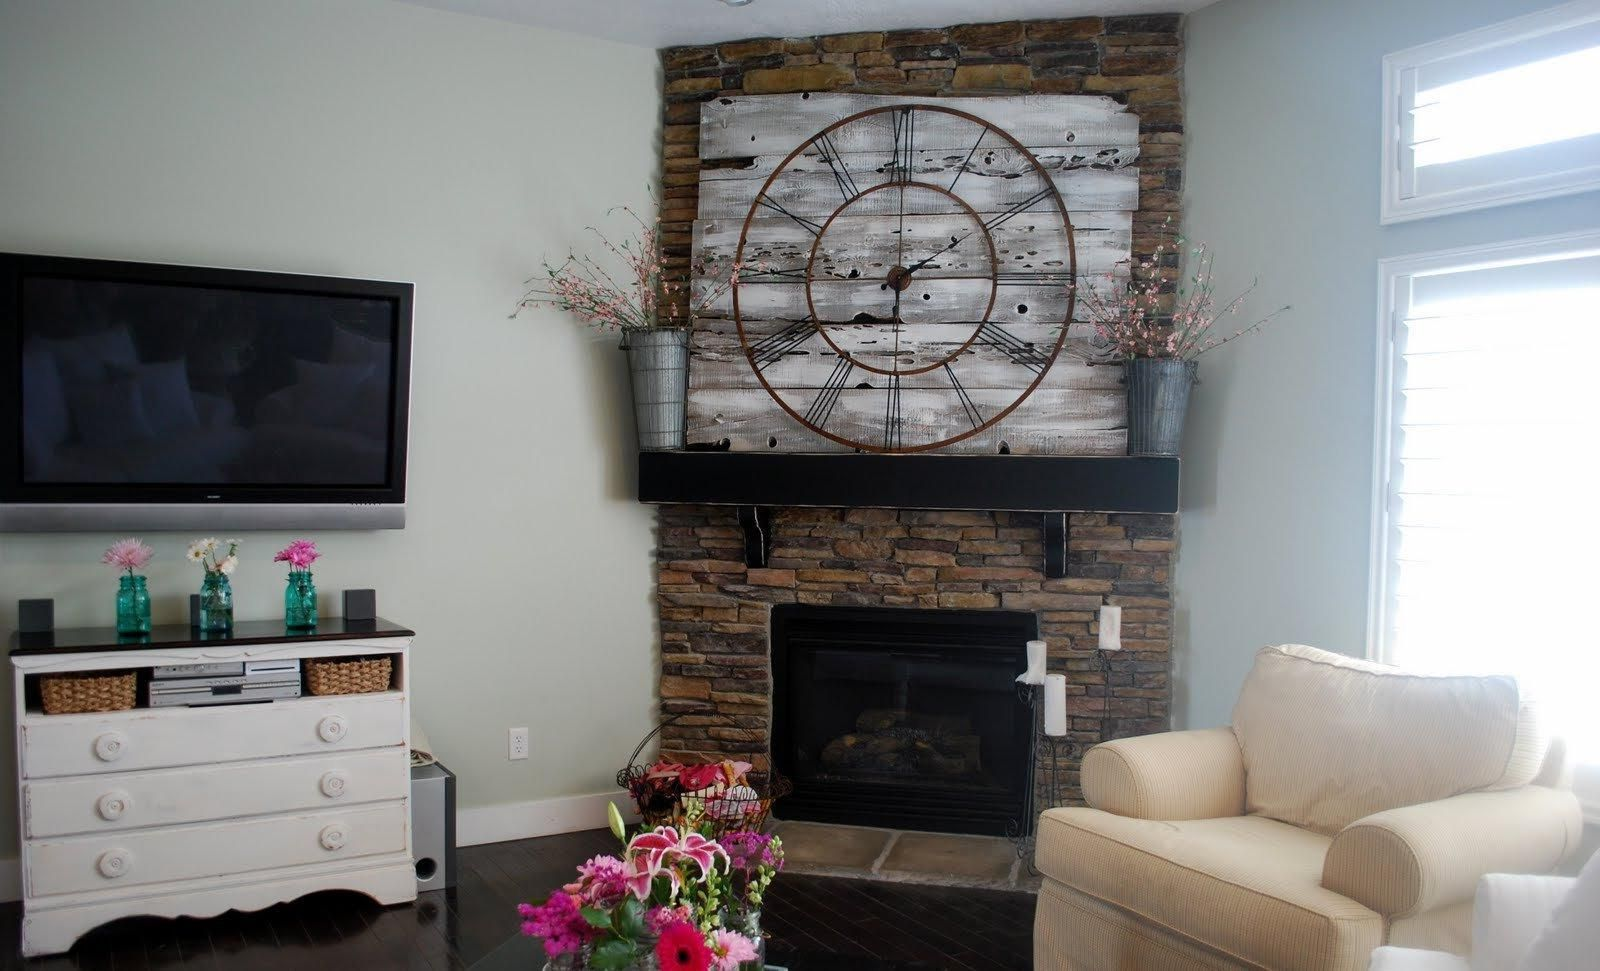 contemporary corner fireplace design with tv wall mount above white nightstand also beige chair beside glass wind0ow plus vintage clock above fireplace mantel